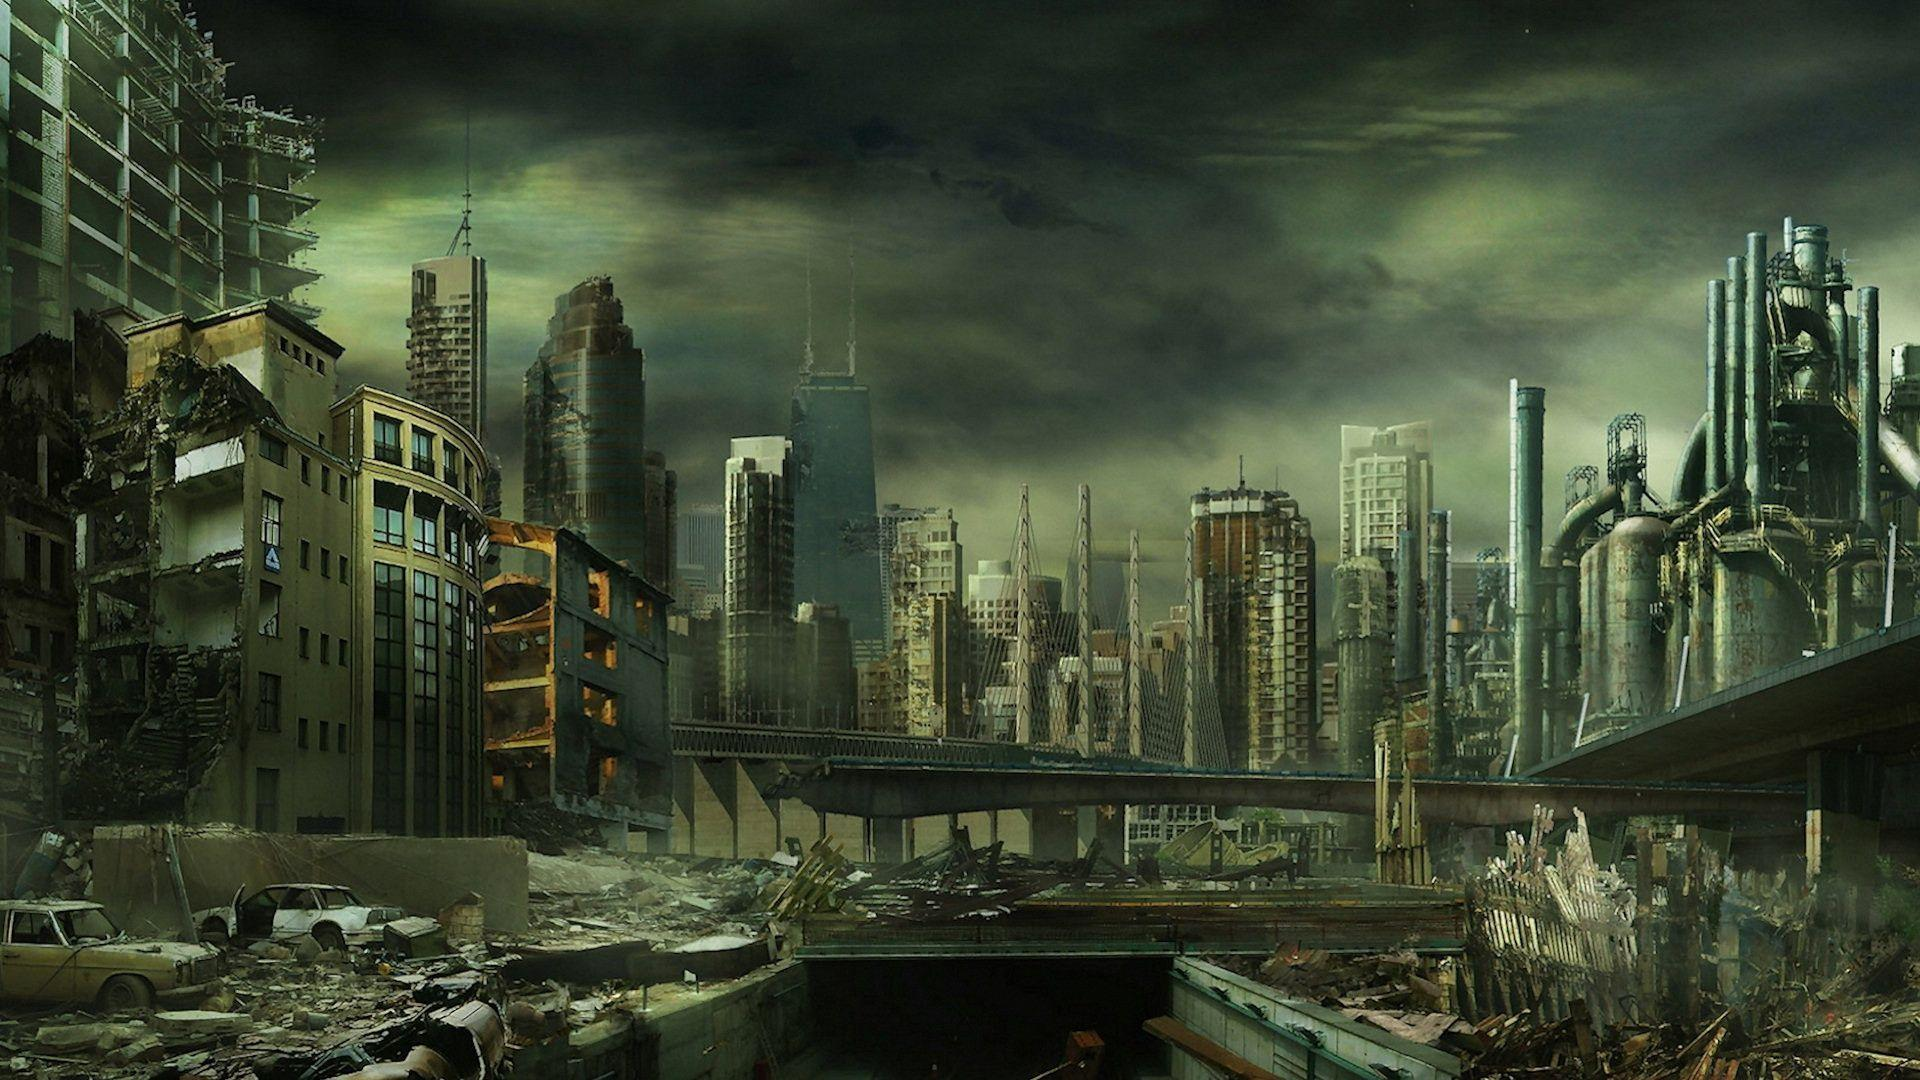 Destroyed City Backgrounds - Wallpaper Cave